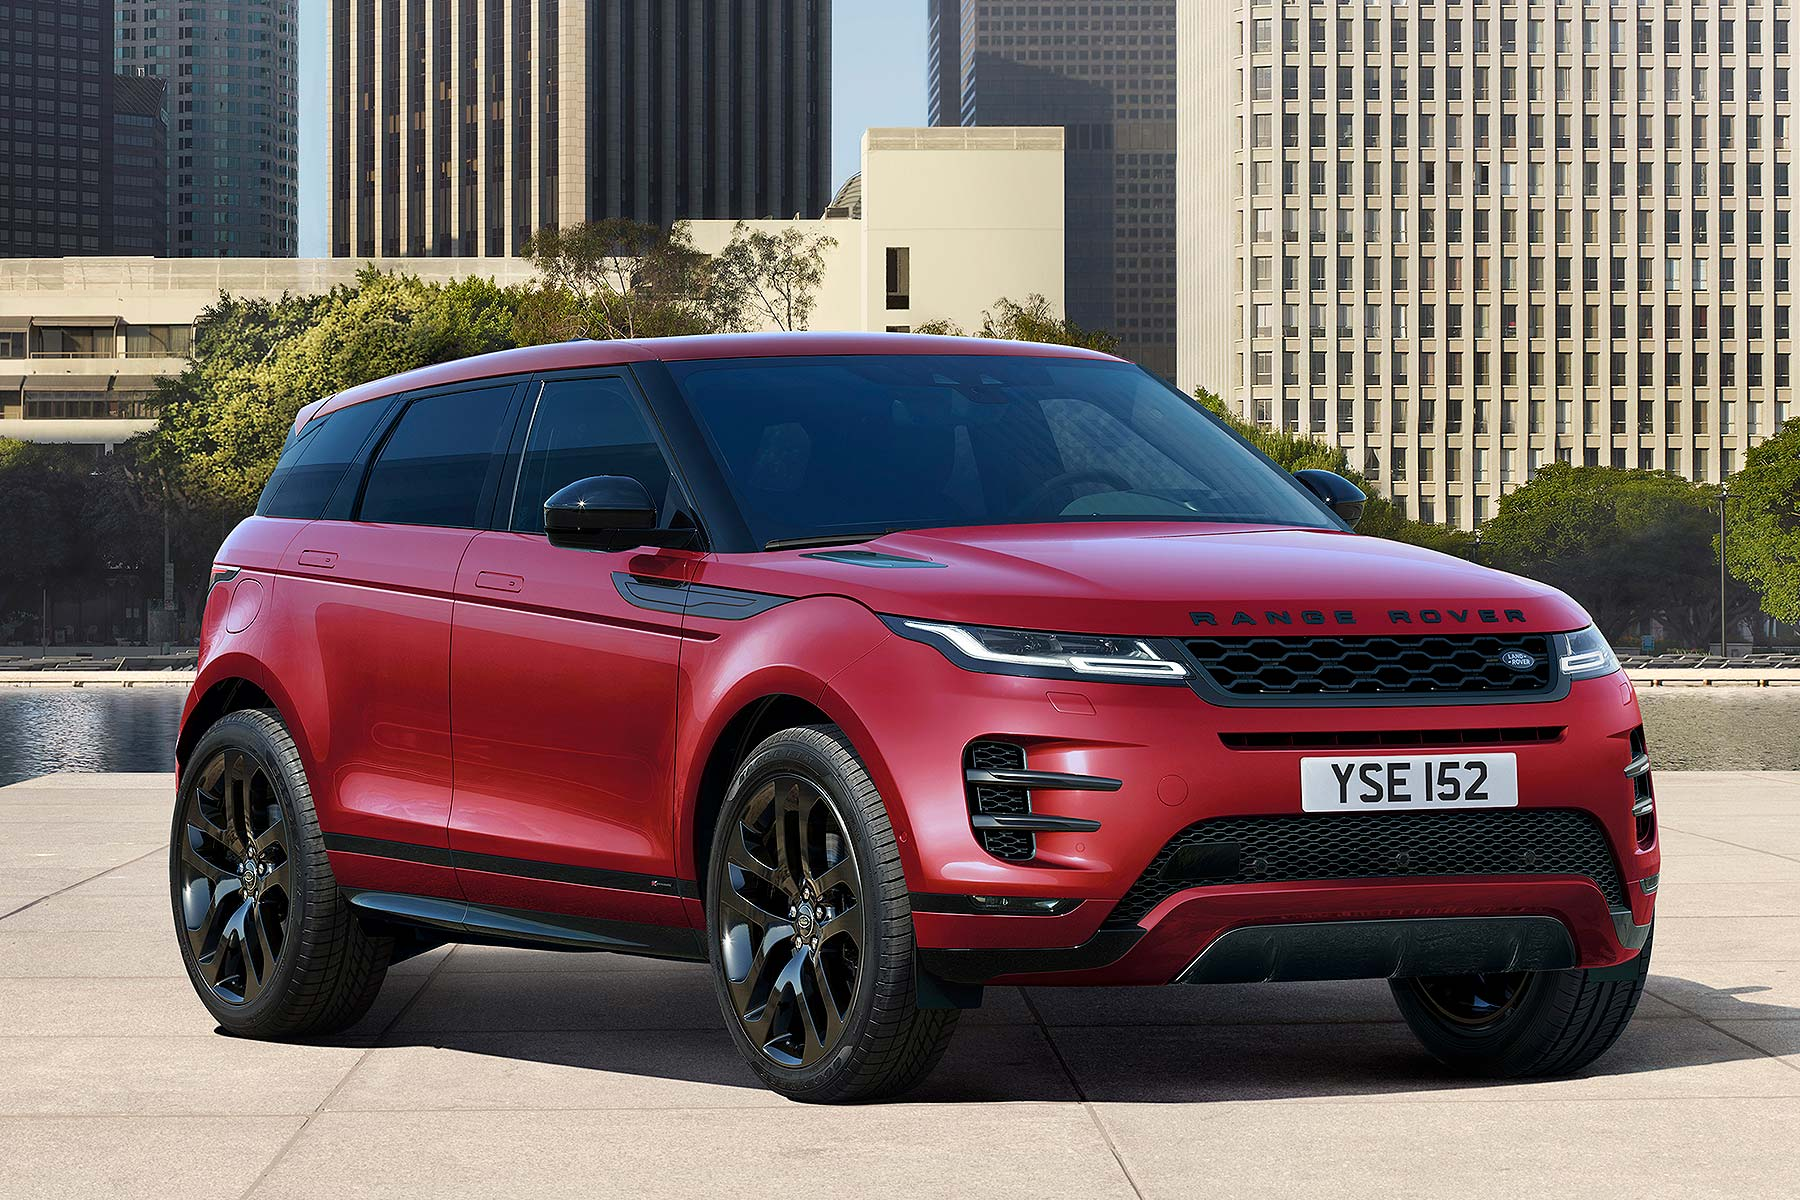 new 2019 range rover evoque prices and specs revealed. Black Bedroom Furniture Sets. Home Design Ideas